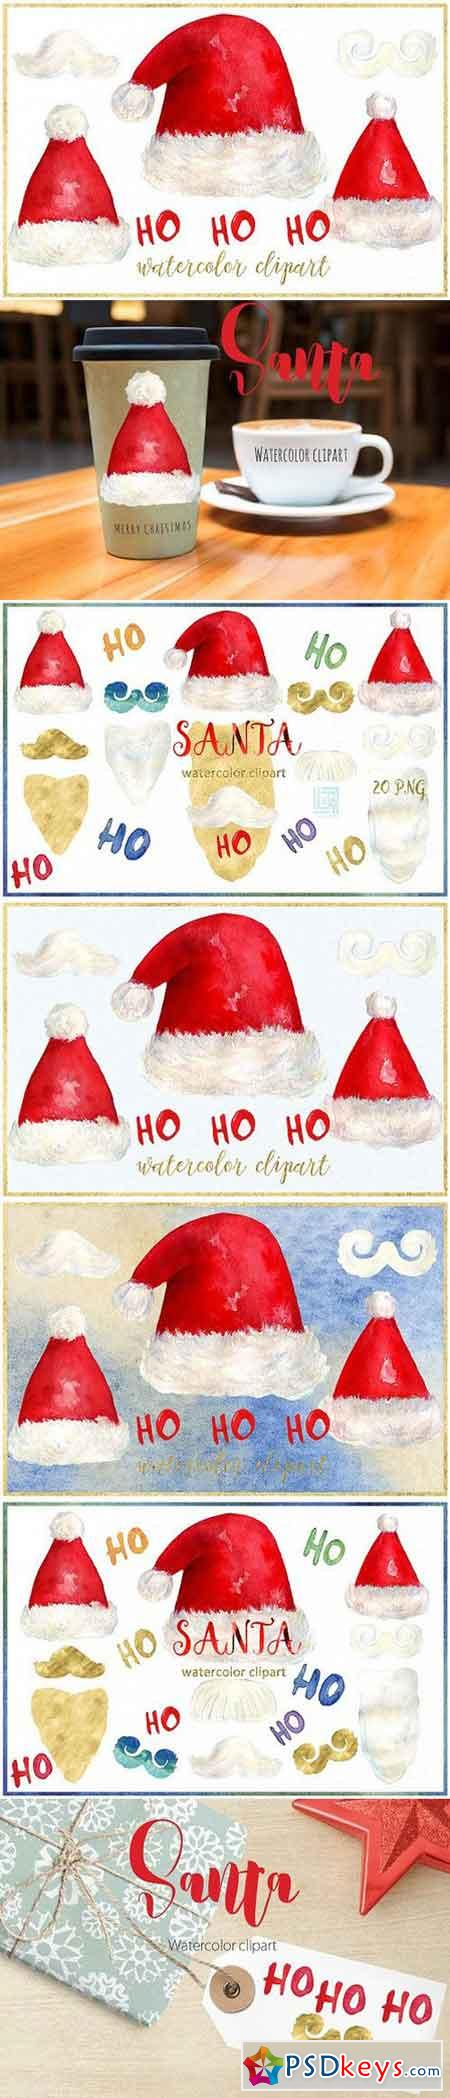 Santa. Christmas watercolor clipart 1001956